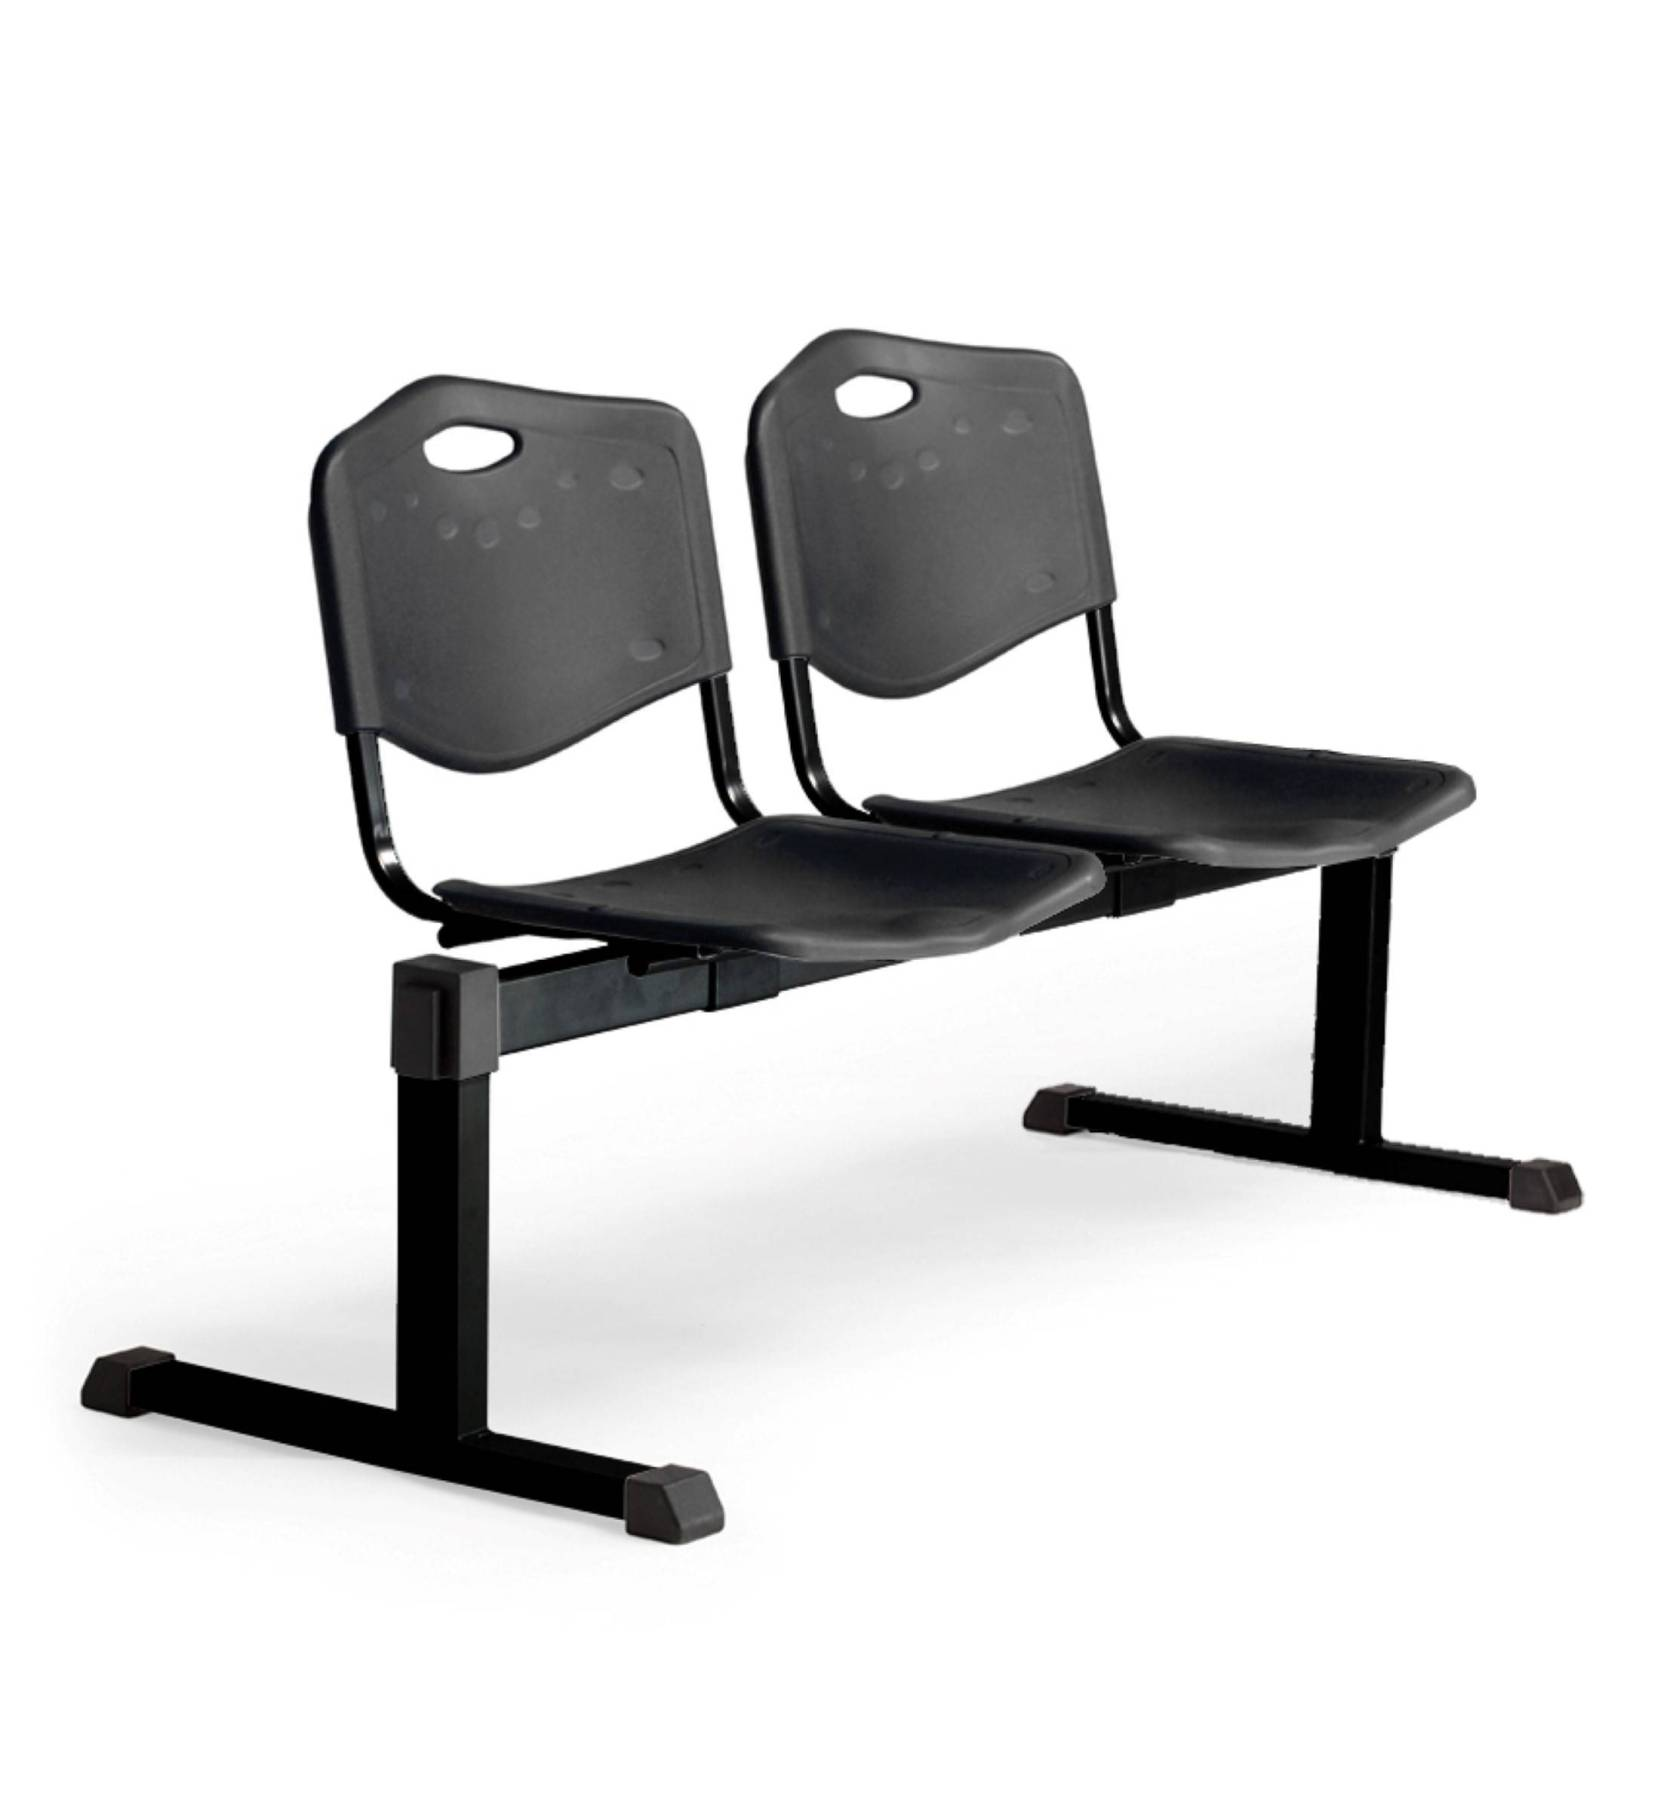 Bench Waiting Two Seater And Iron In Color Black-up Seat And Backstop's Structure In PVC Color Black Taphole And